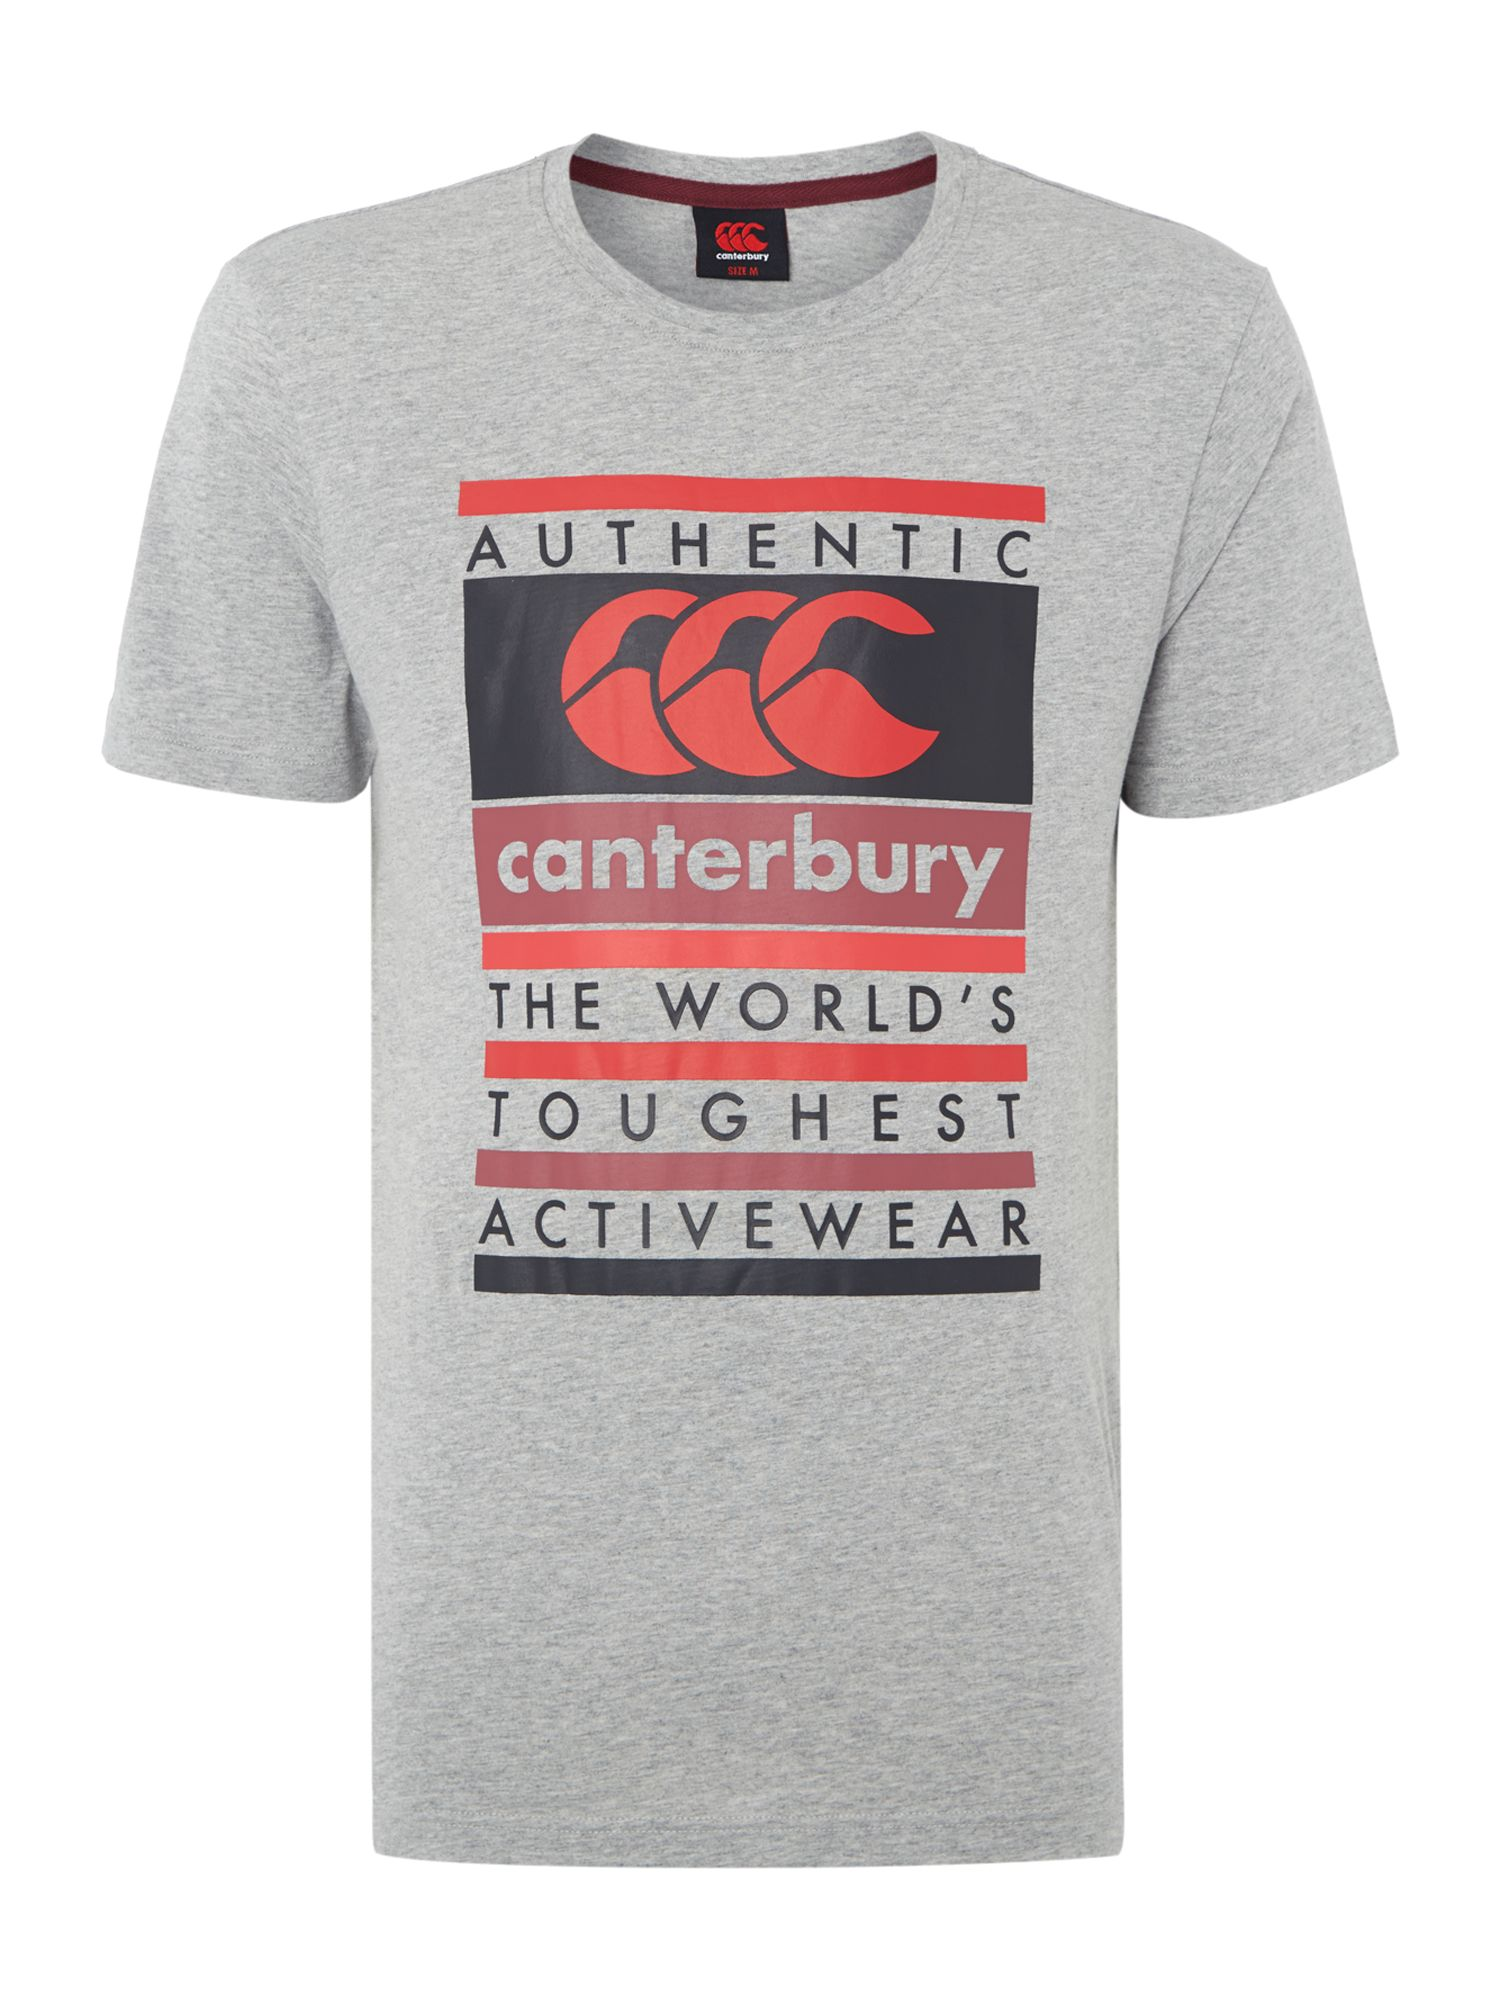 Authentic ccc graphic t-shirt